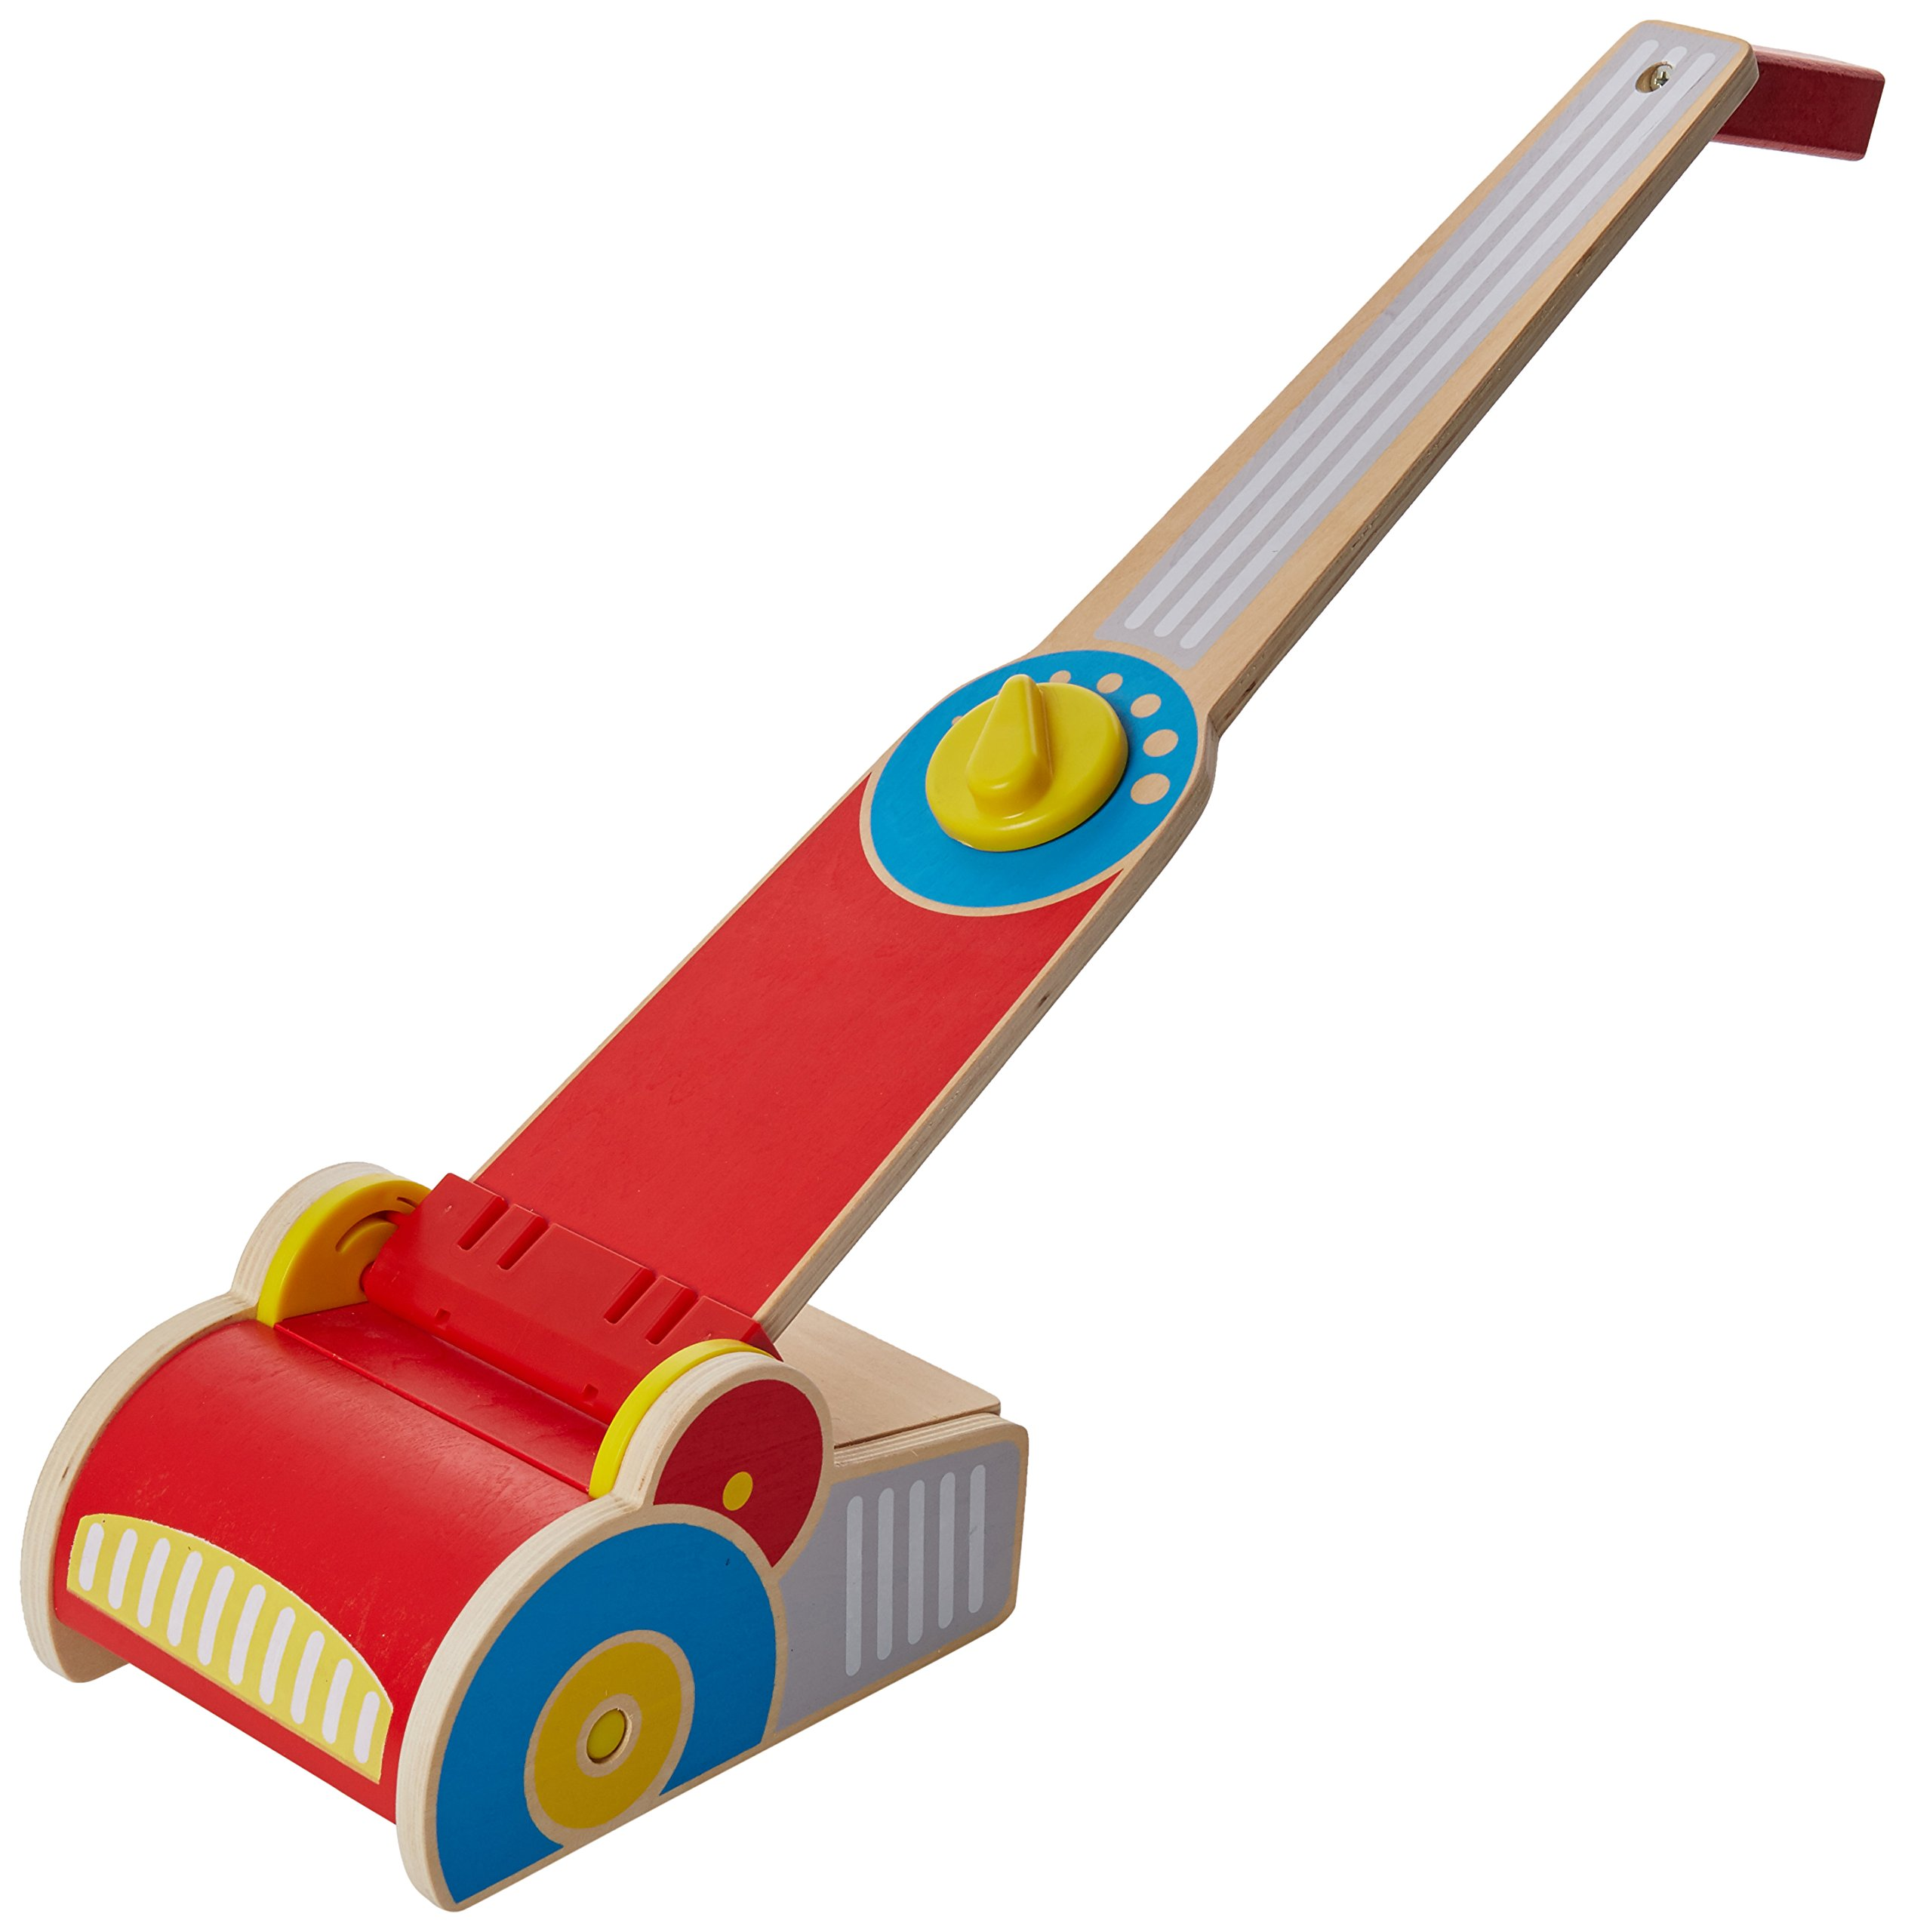 Melissa & Doug Wooden Vacuum Up Play Set - 6 Wooden Pieces to Pick Up